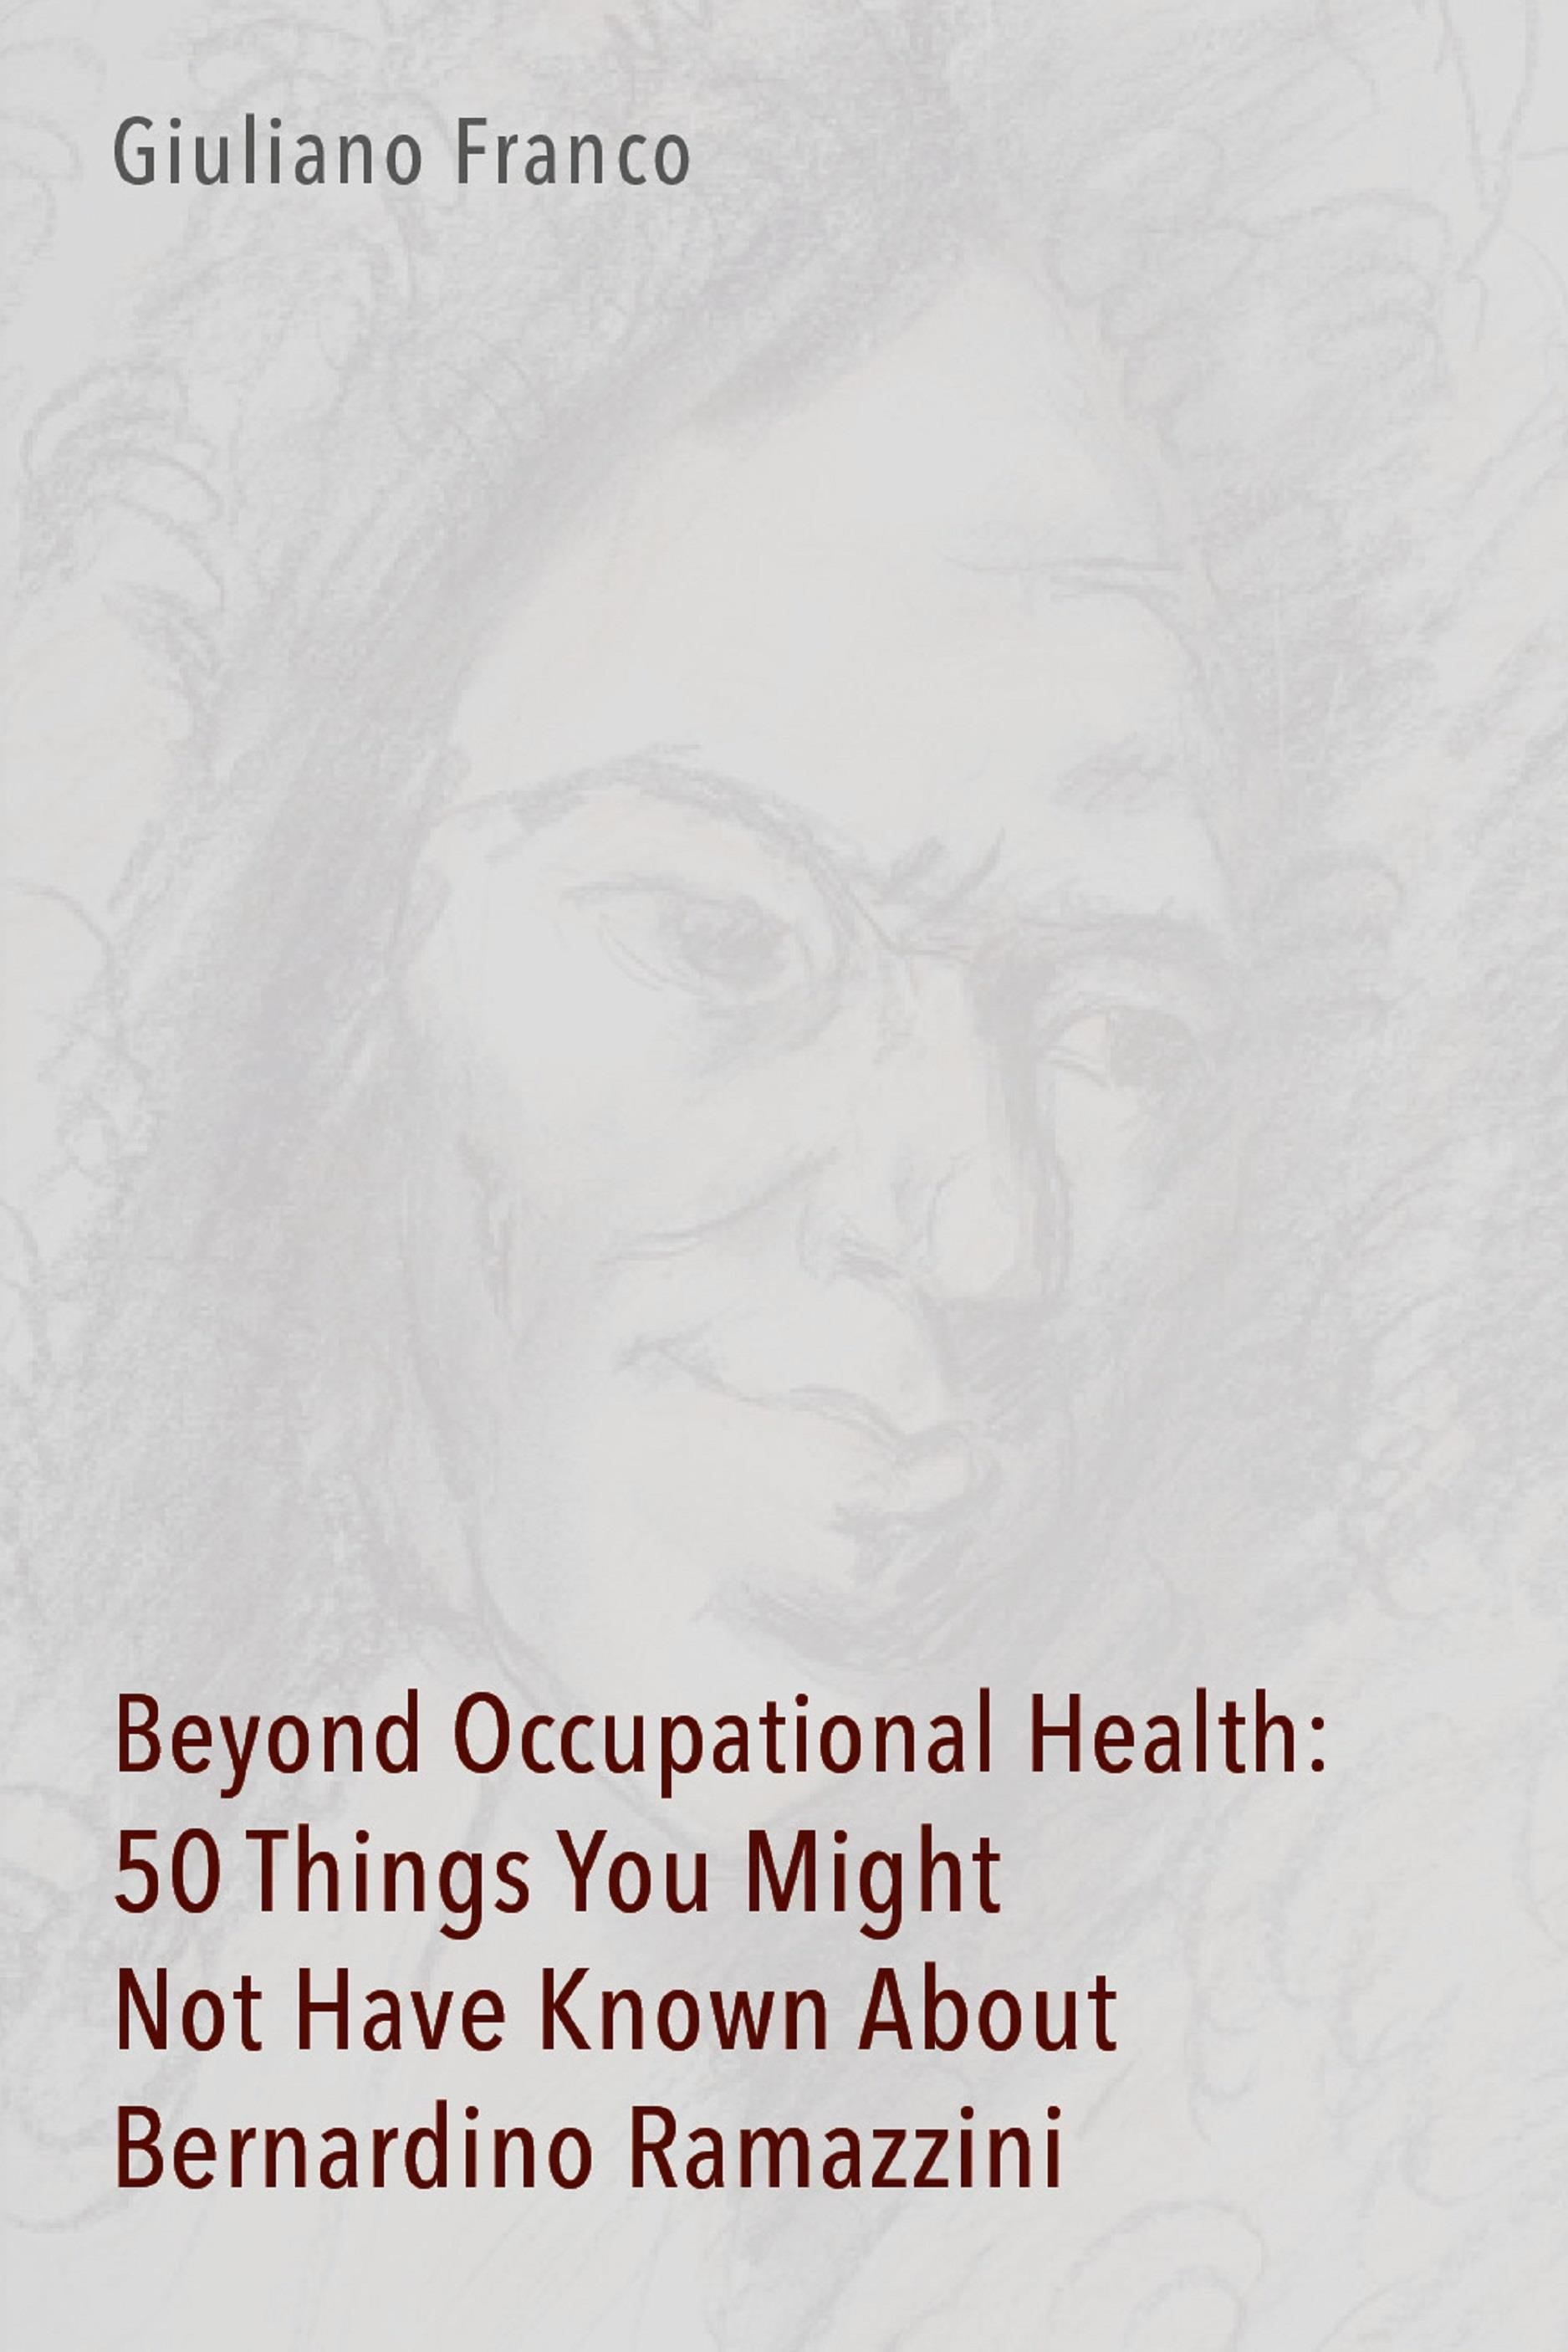 Beyond Occupational Health: 50 Things You Might Not Have Known About Bernardino Ramazzini